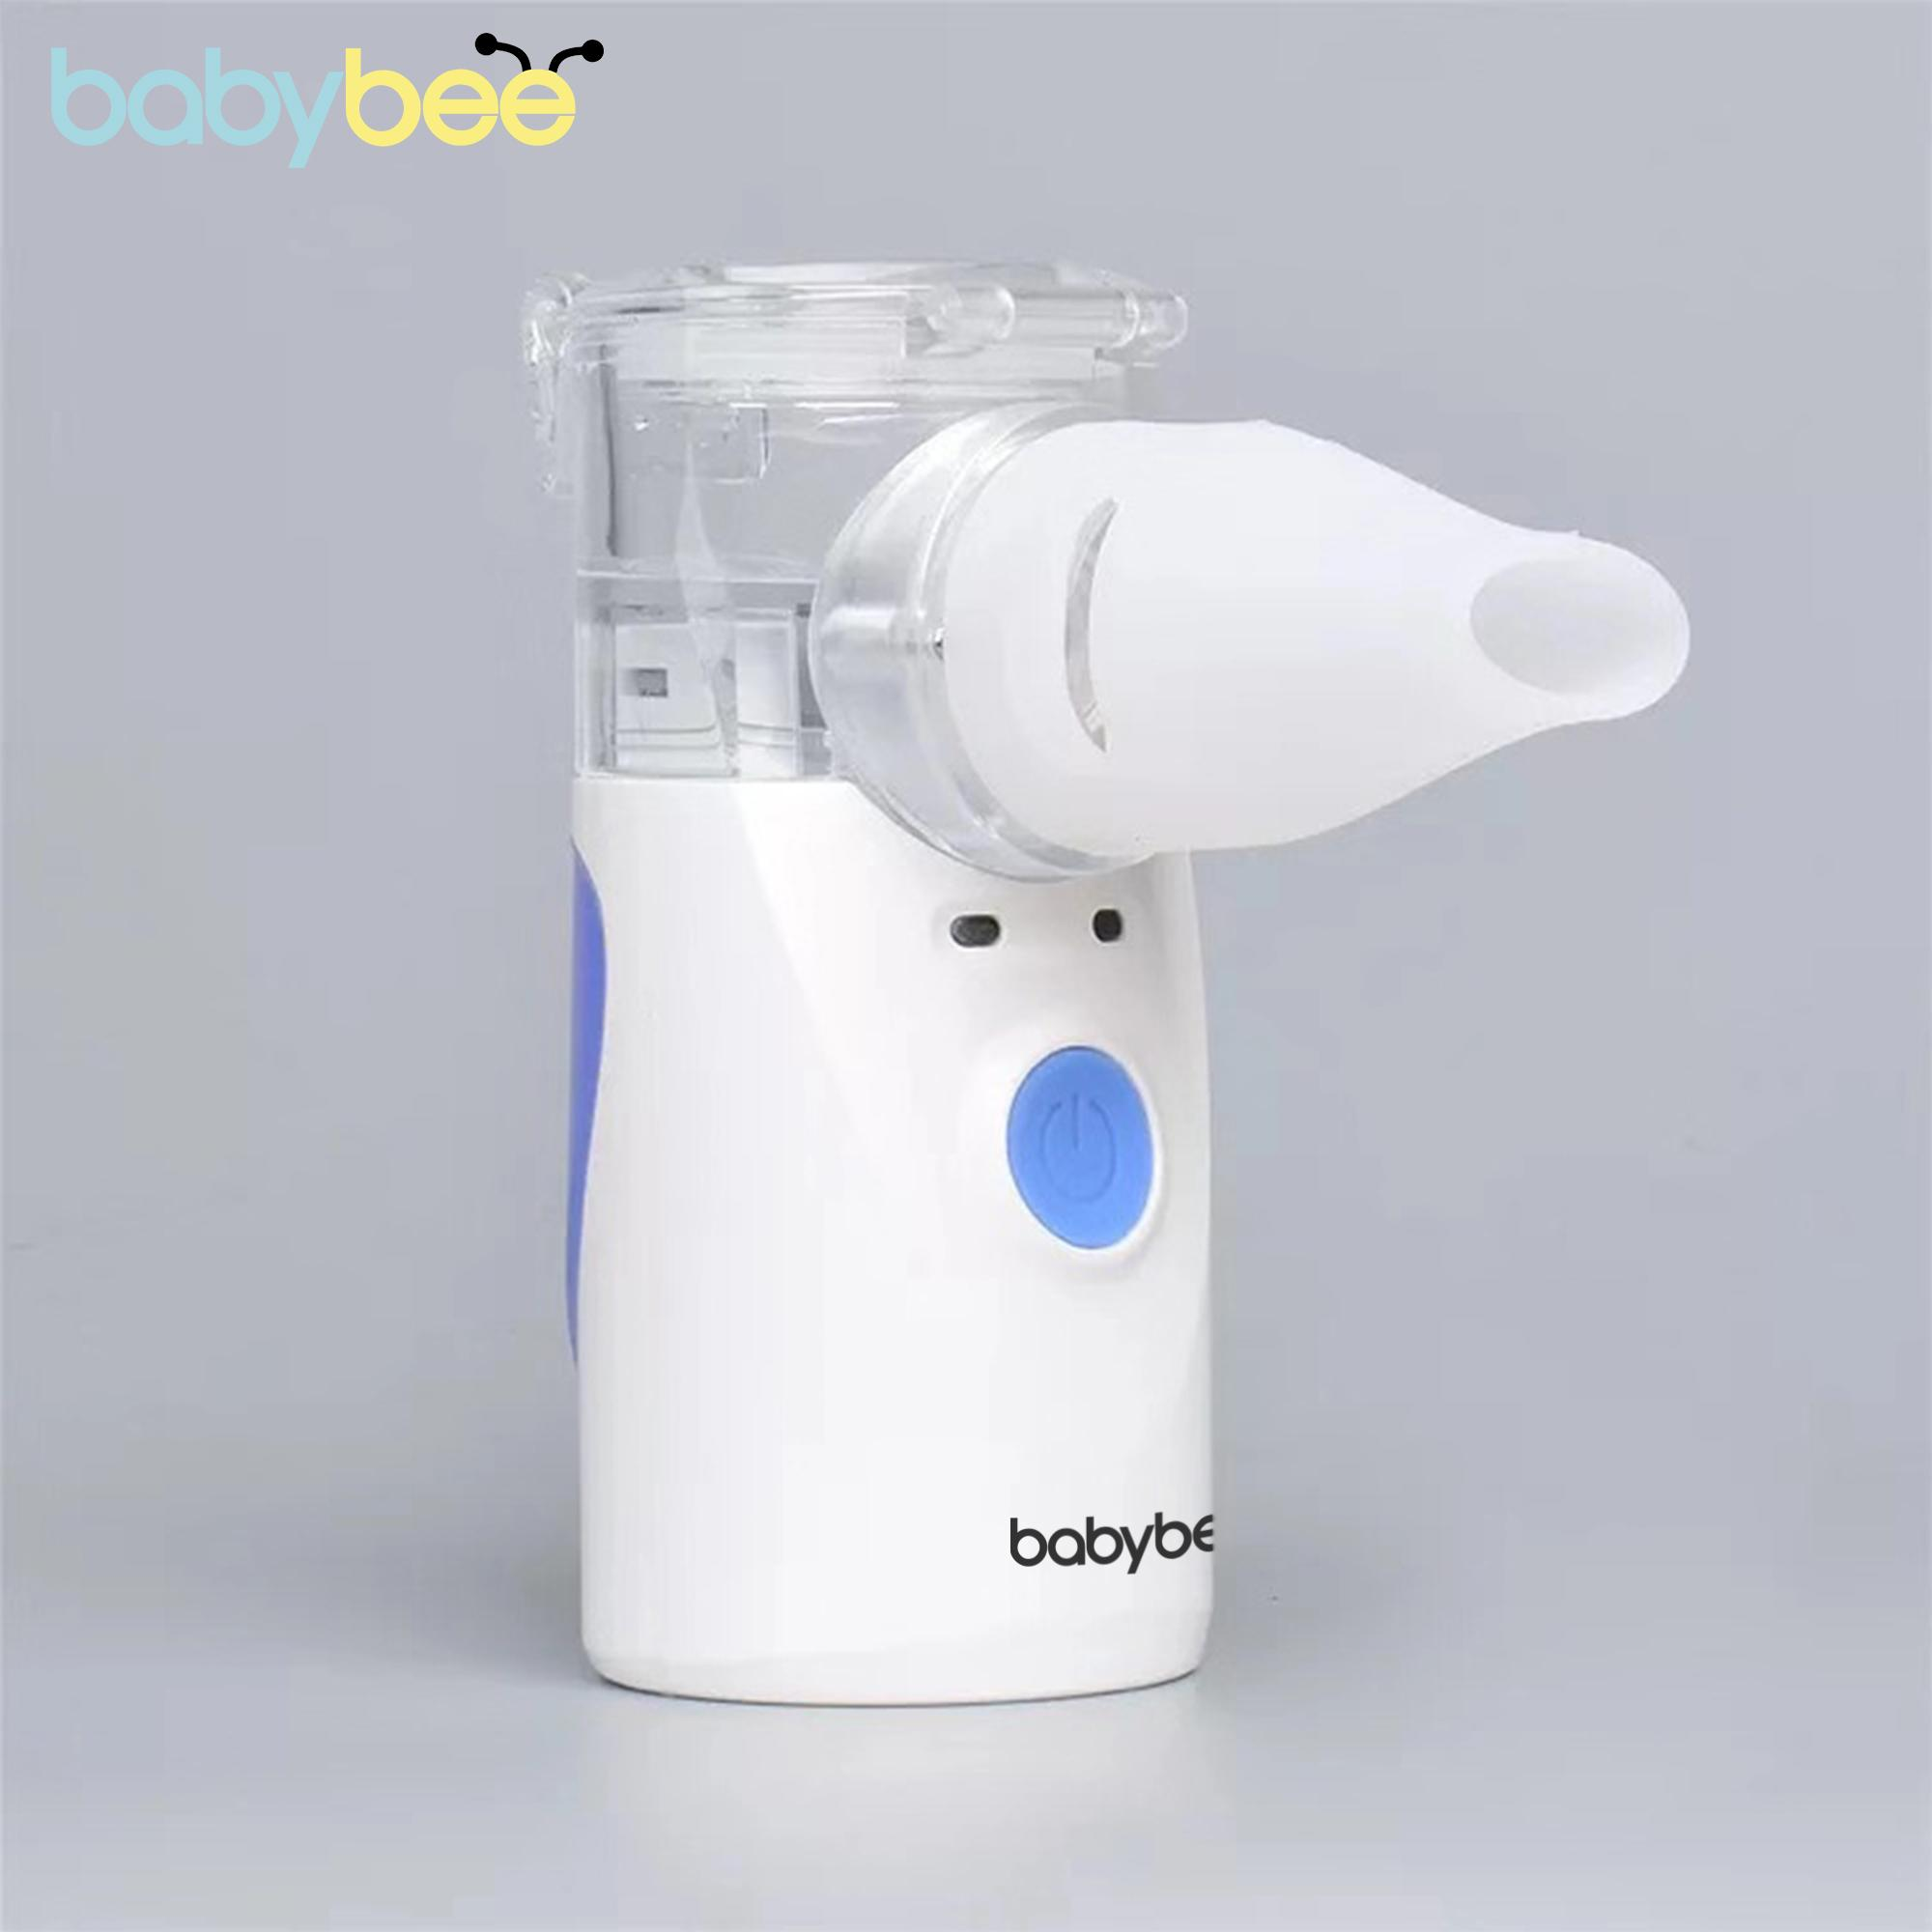 Portable Nebulizer Inhaler And Handheld Vaporizers For Kids, Adults From Babybee By Savemore Solutions.